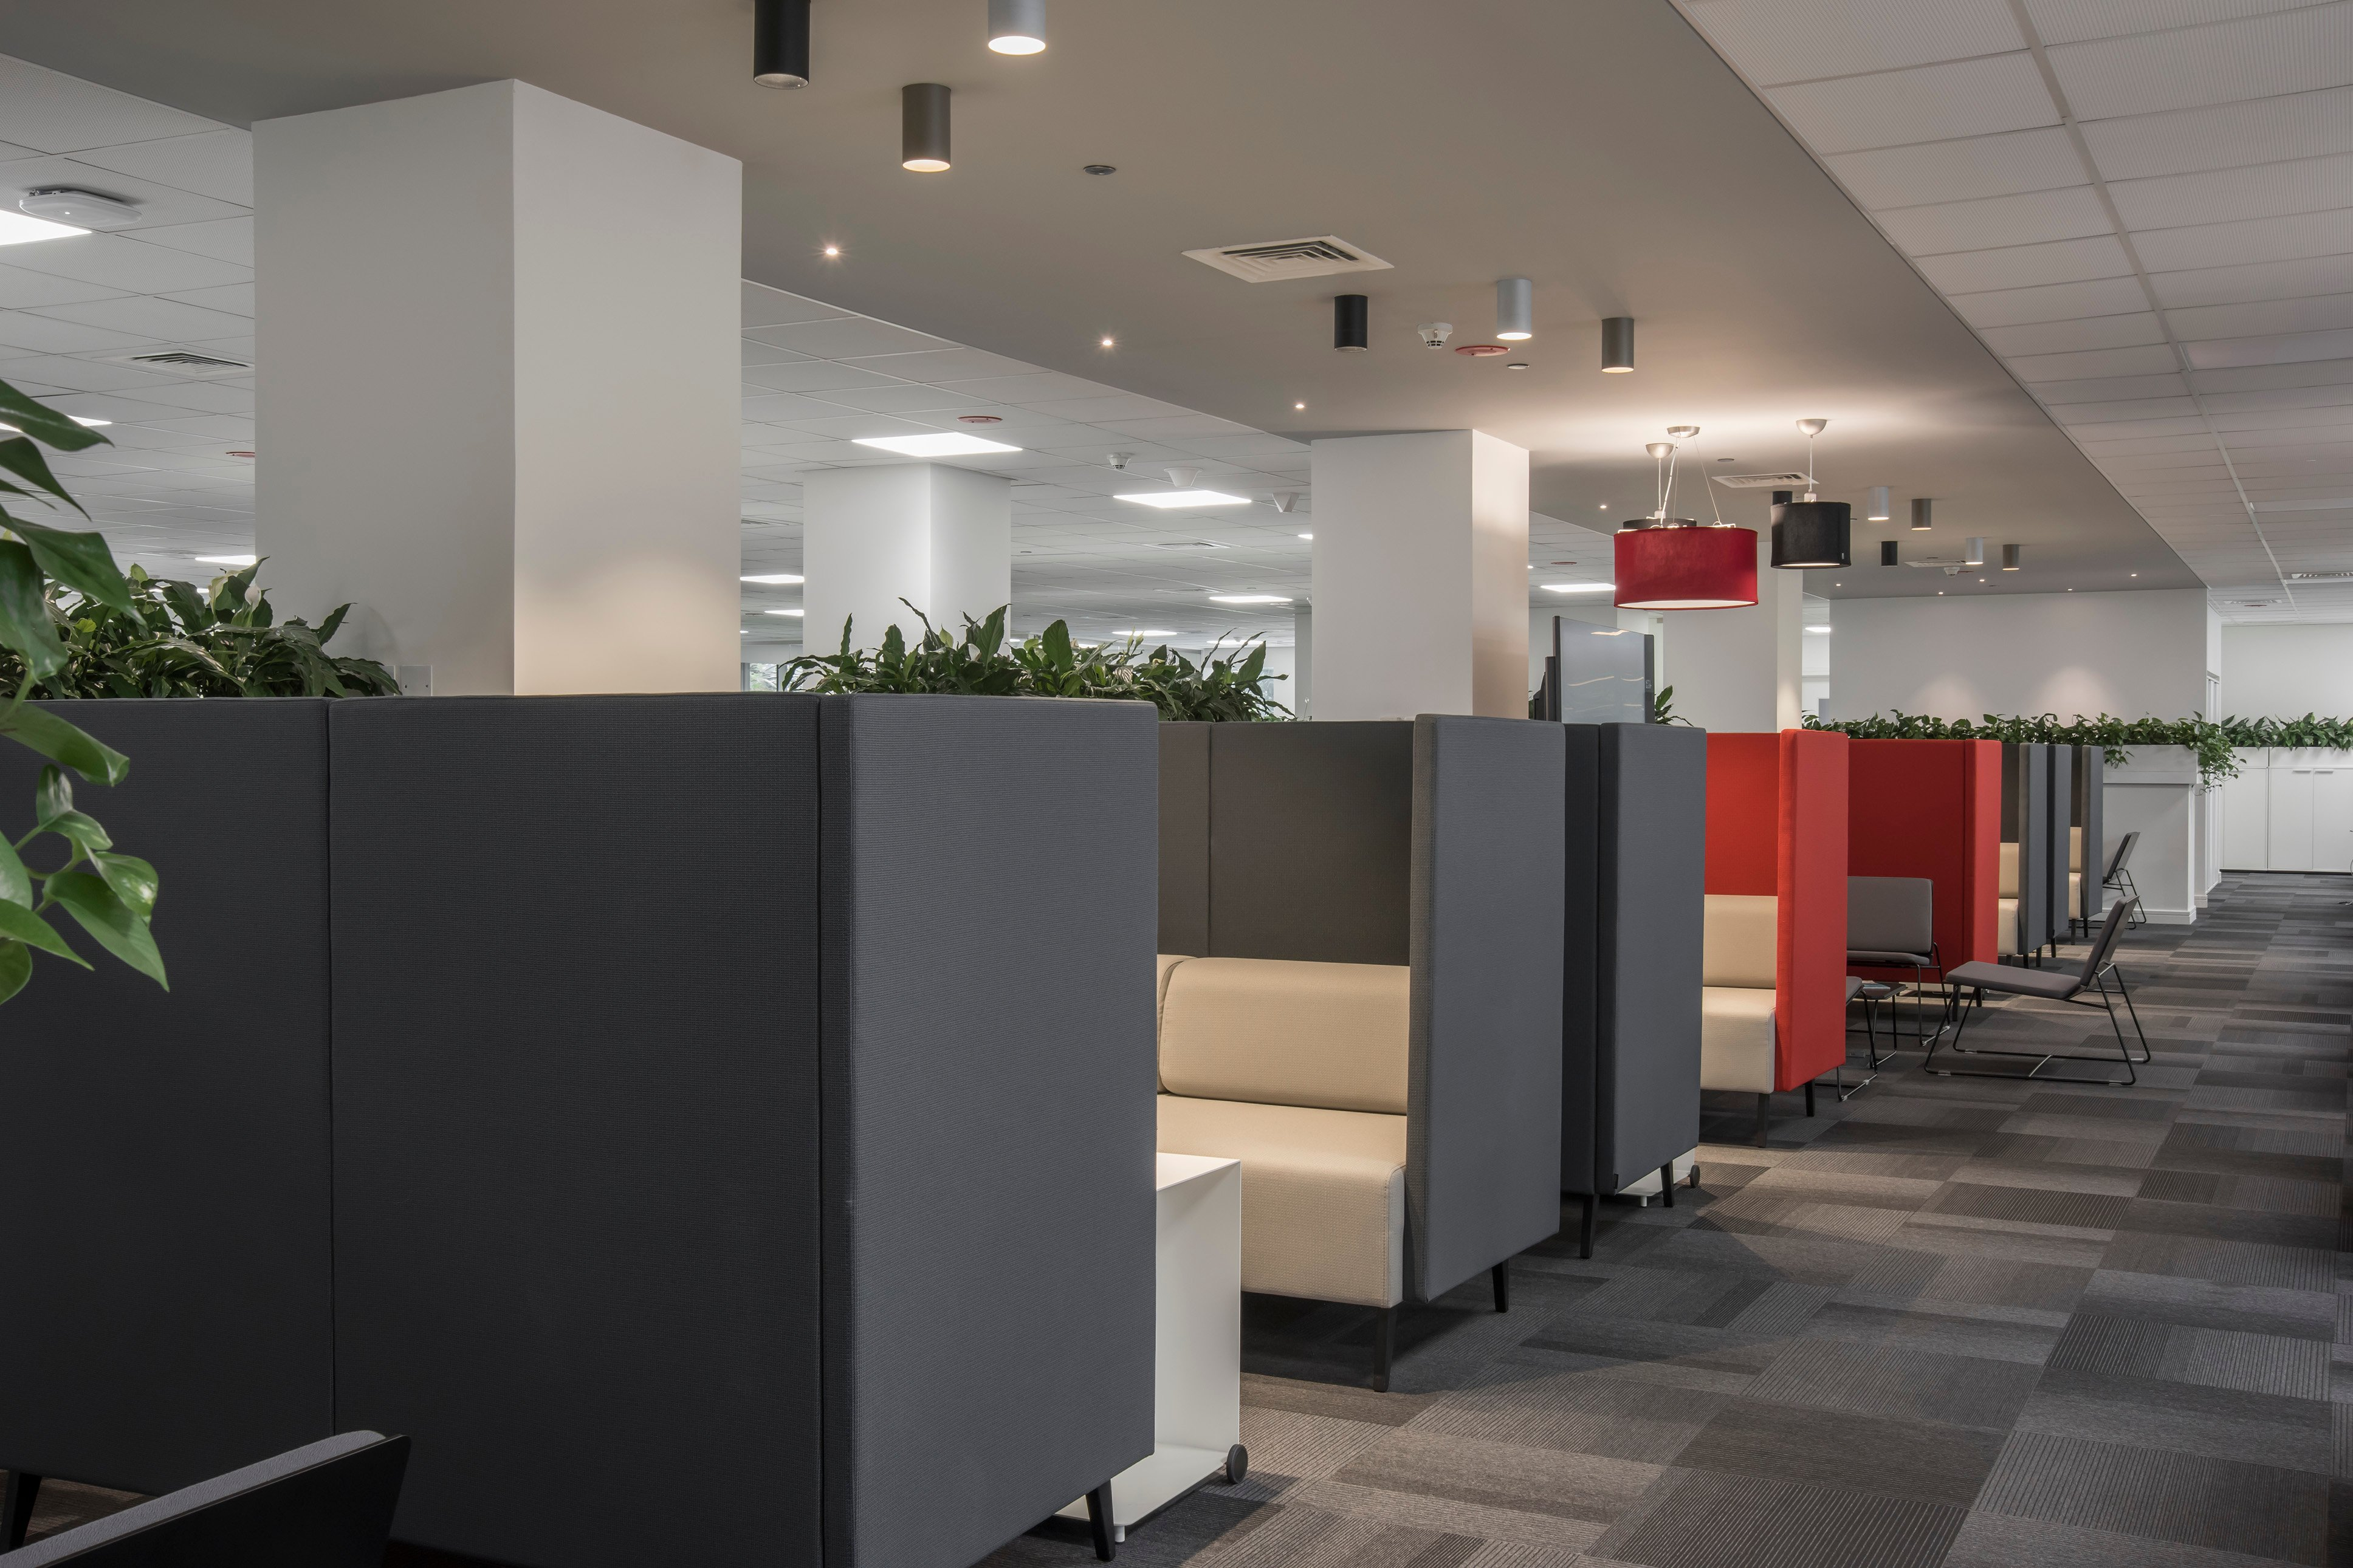 Meeting modules provide private and comfortable meeting space in Canon's new activity based office space.